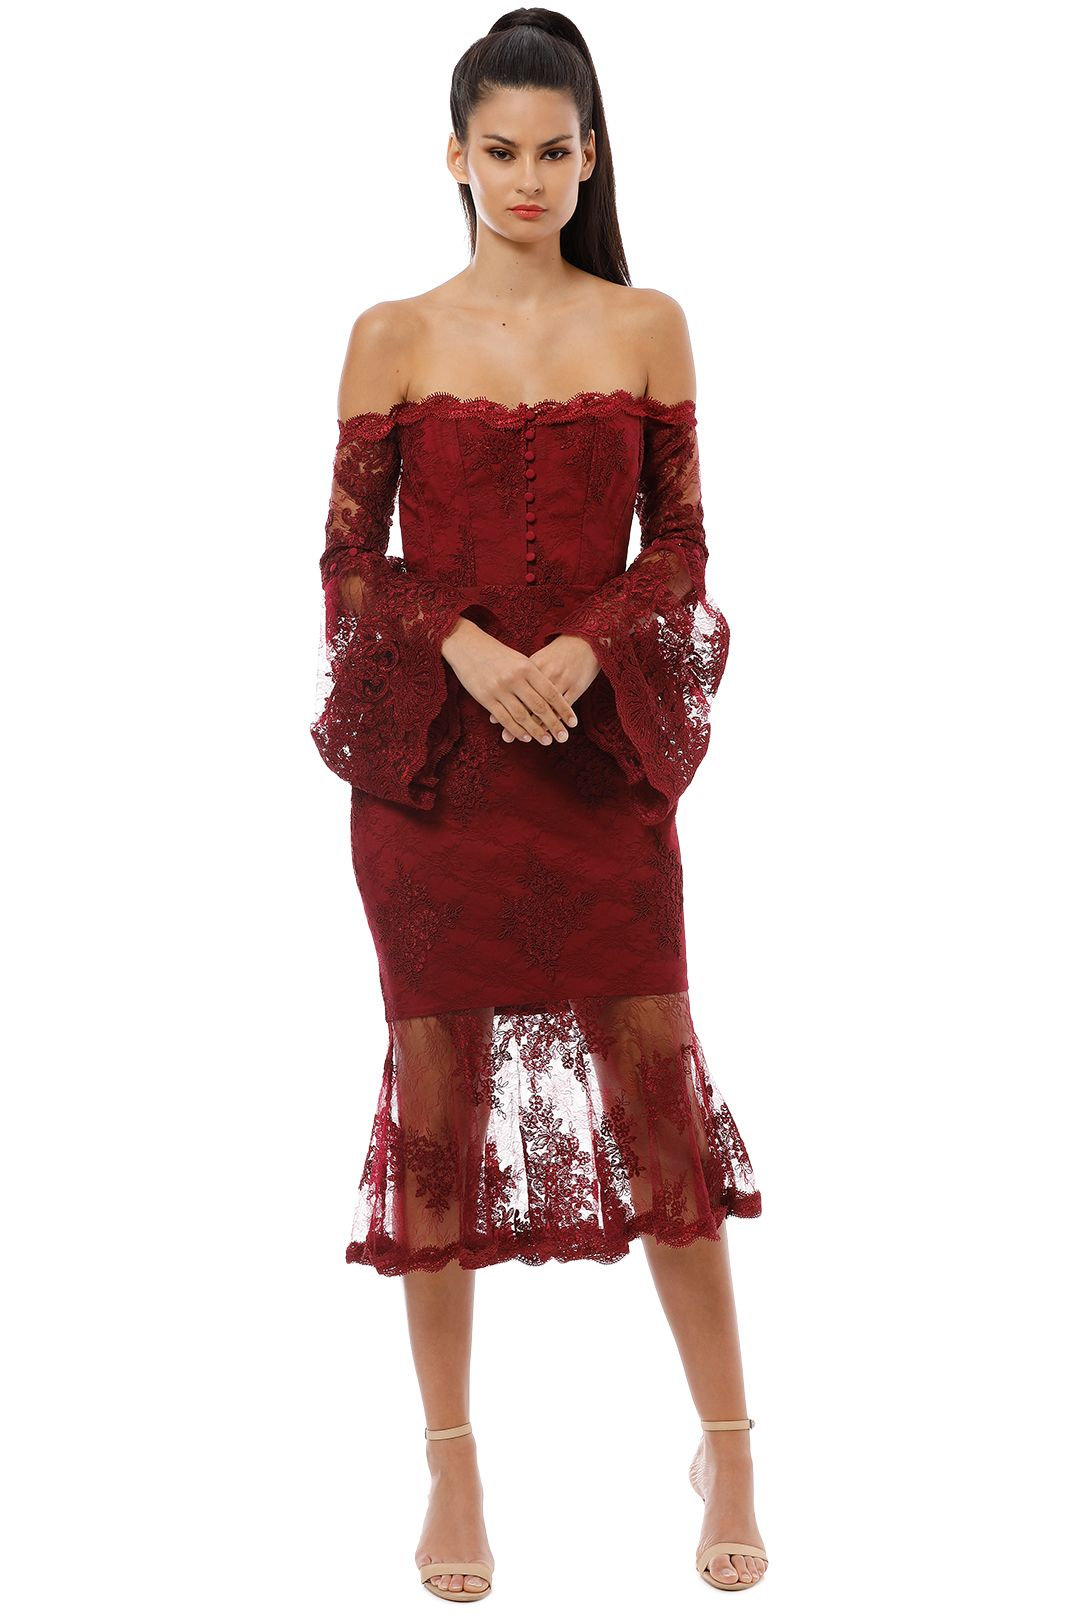 Nicholas - Octavia Lace Corset Midi Dress - Bordeaux - Front